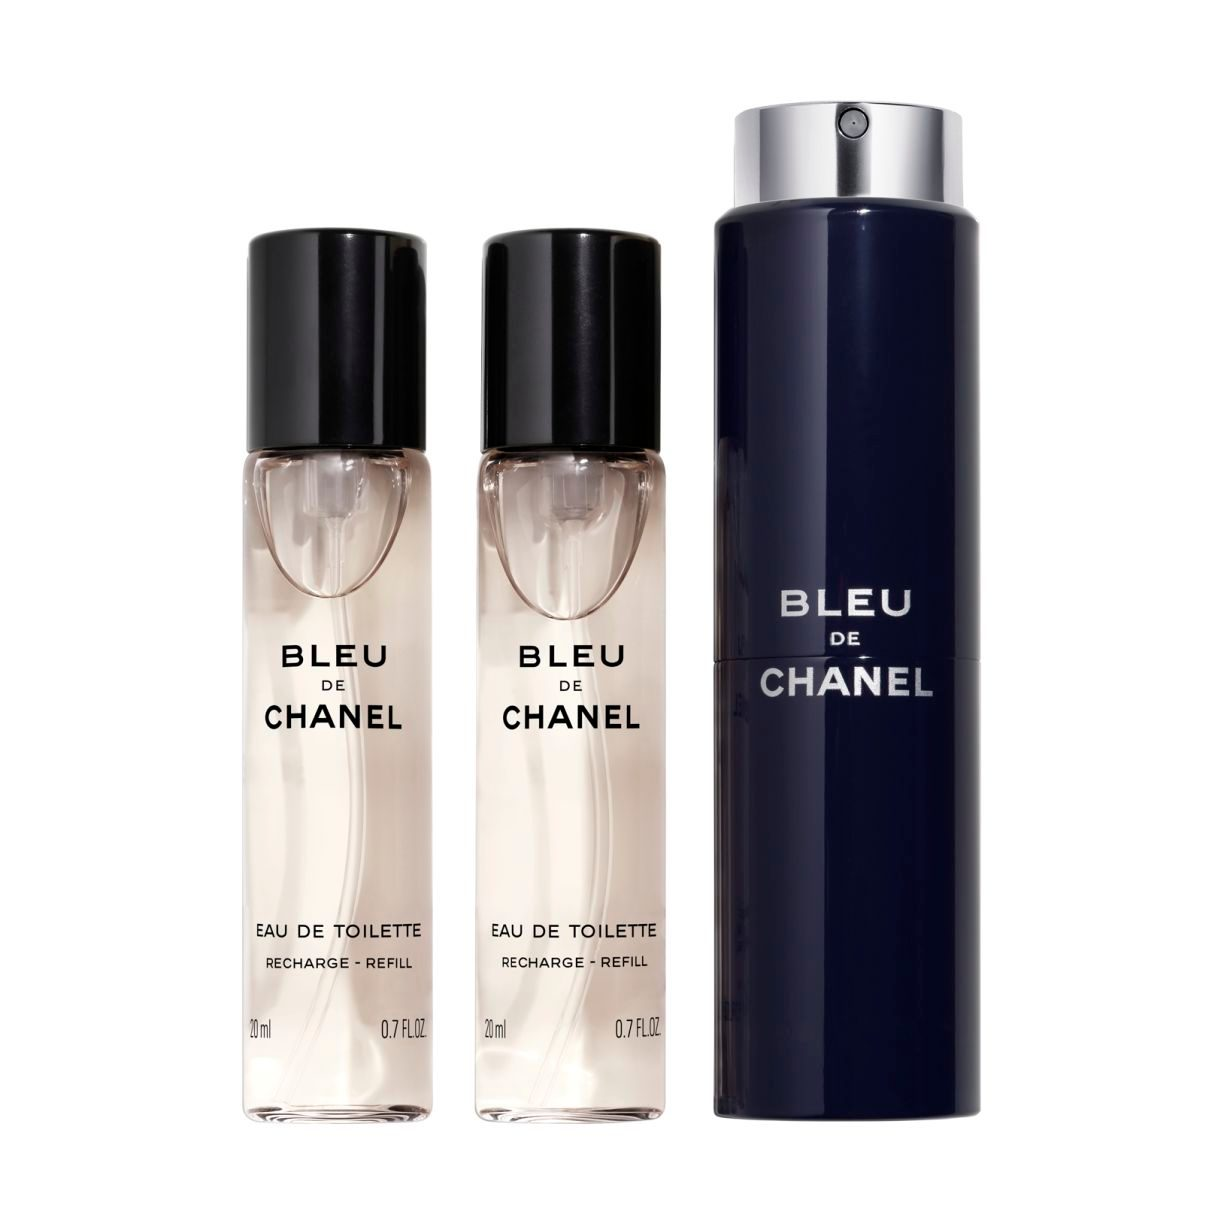 BLEU DE CHANEL EAU DE TOILETTE REFILLABLE TRAVEL SPRAY 3 x 20ml